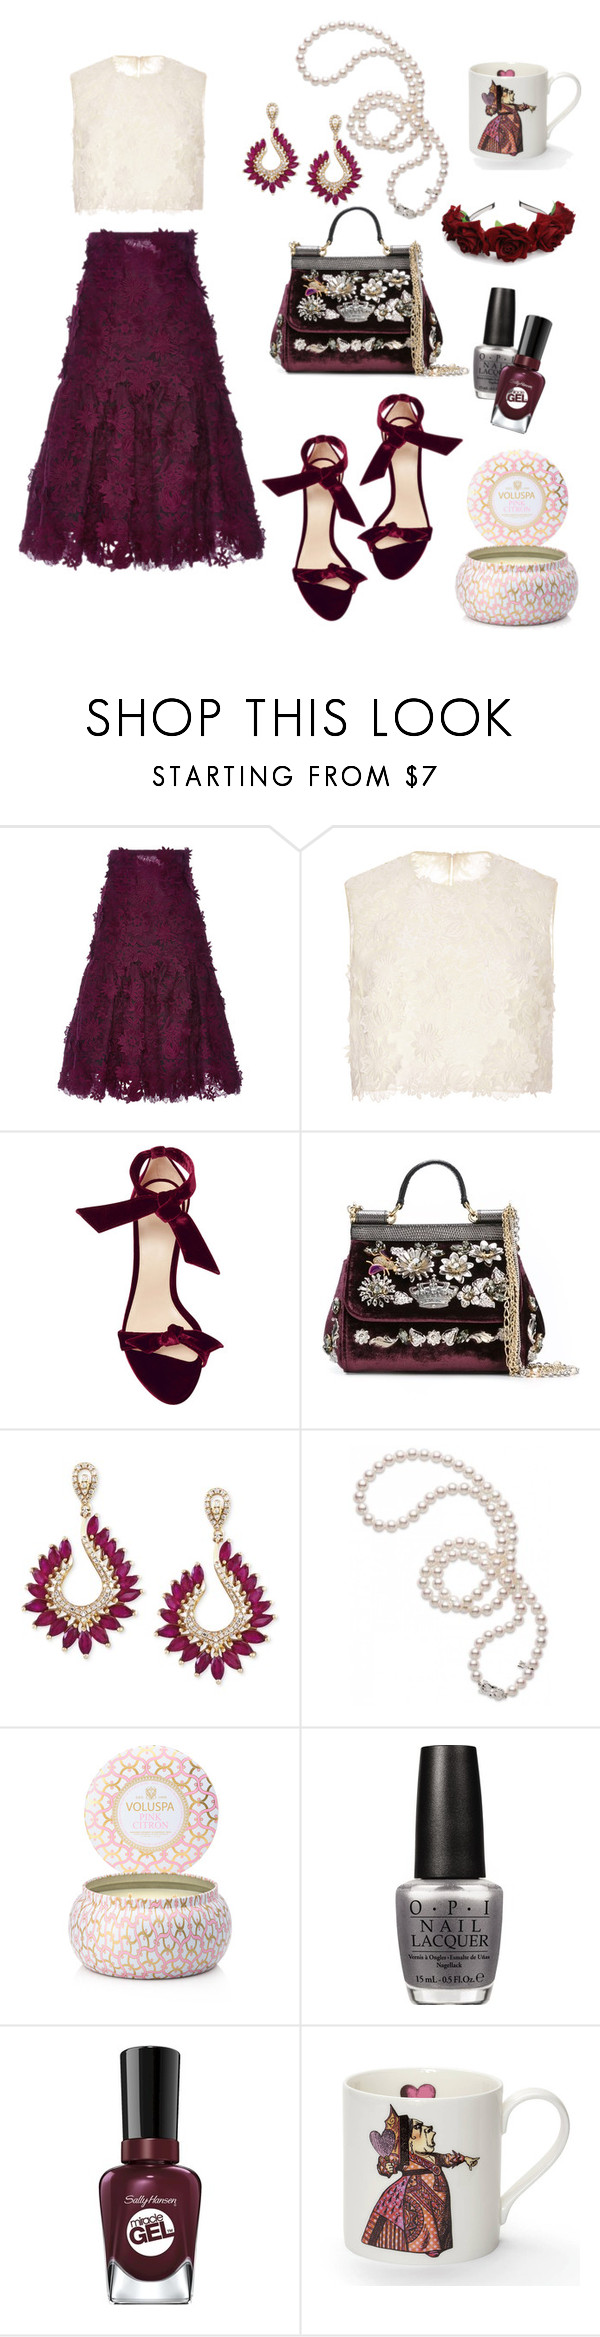 """""""two piece dress"""" by art-gives-me-life ❤ liked on Polyvore featuring Costarellos, Alexandre Birman, Dolce&Gabbana, Effy Jewelry, Mikimoto, Voluspa, OPI, Sally Hansen, Mrs Moore and contestentry"""